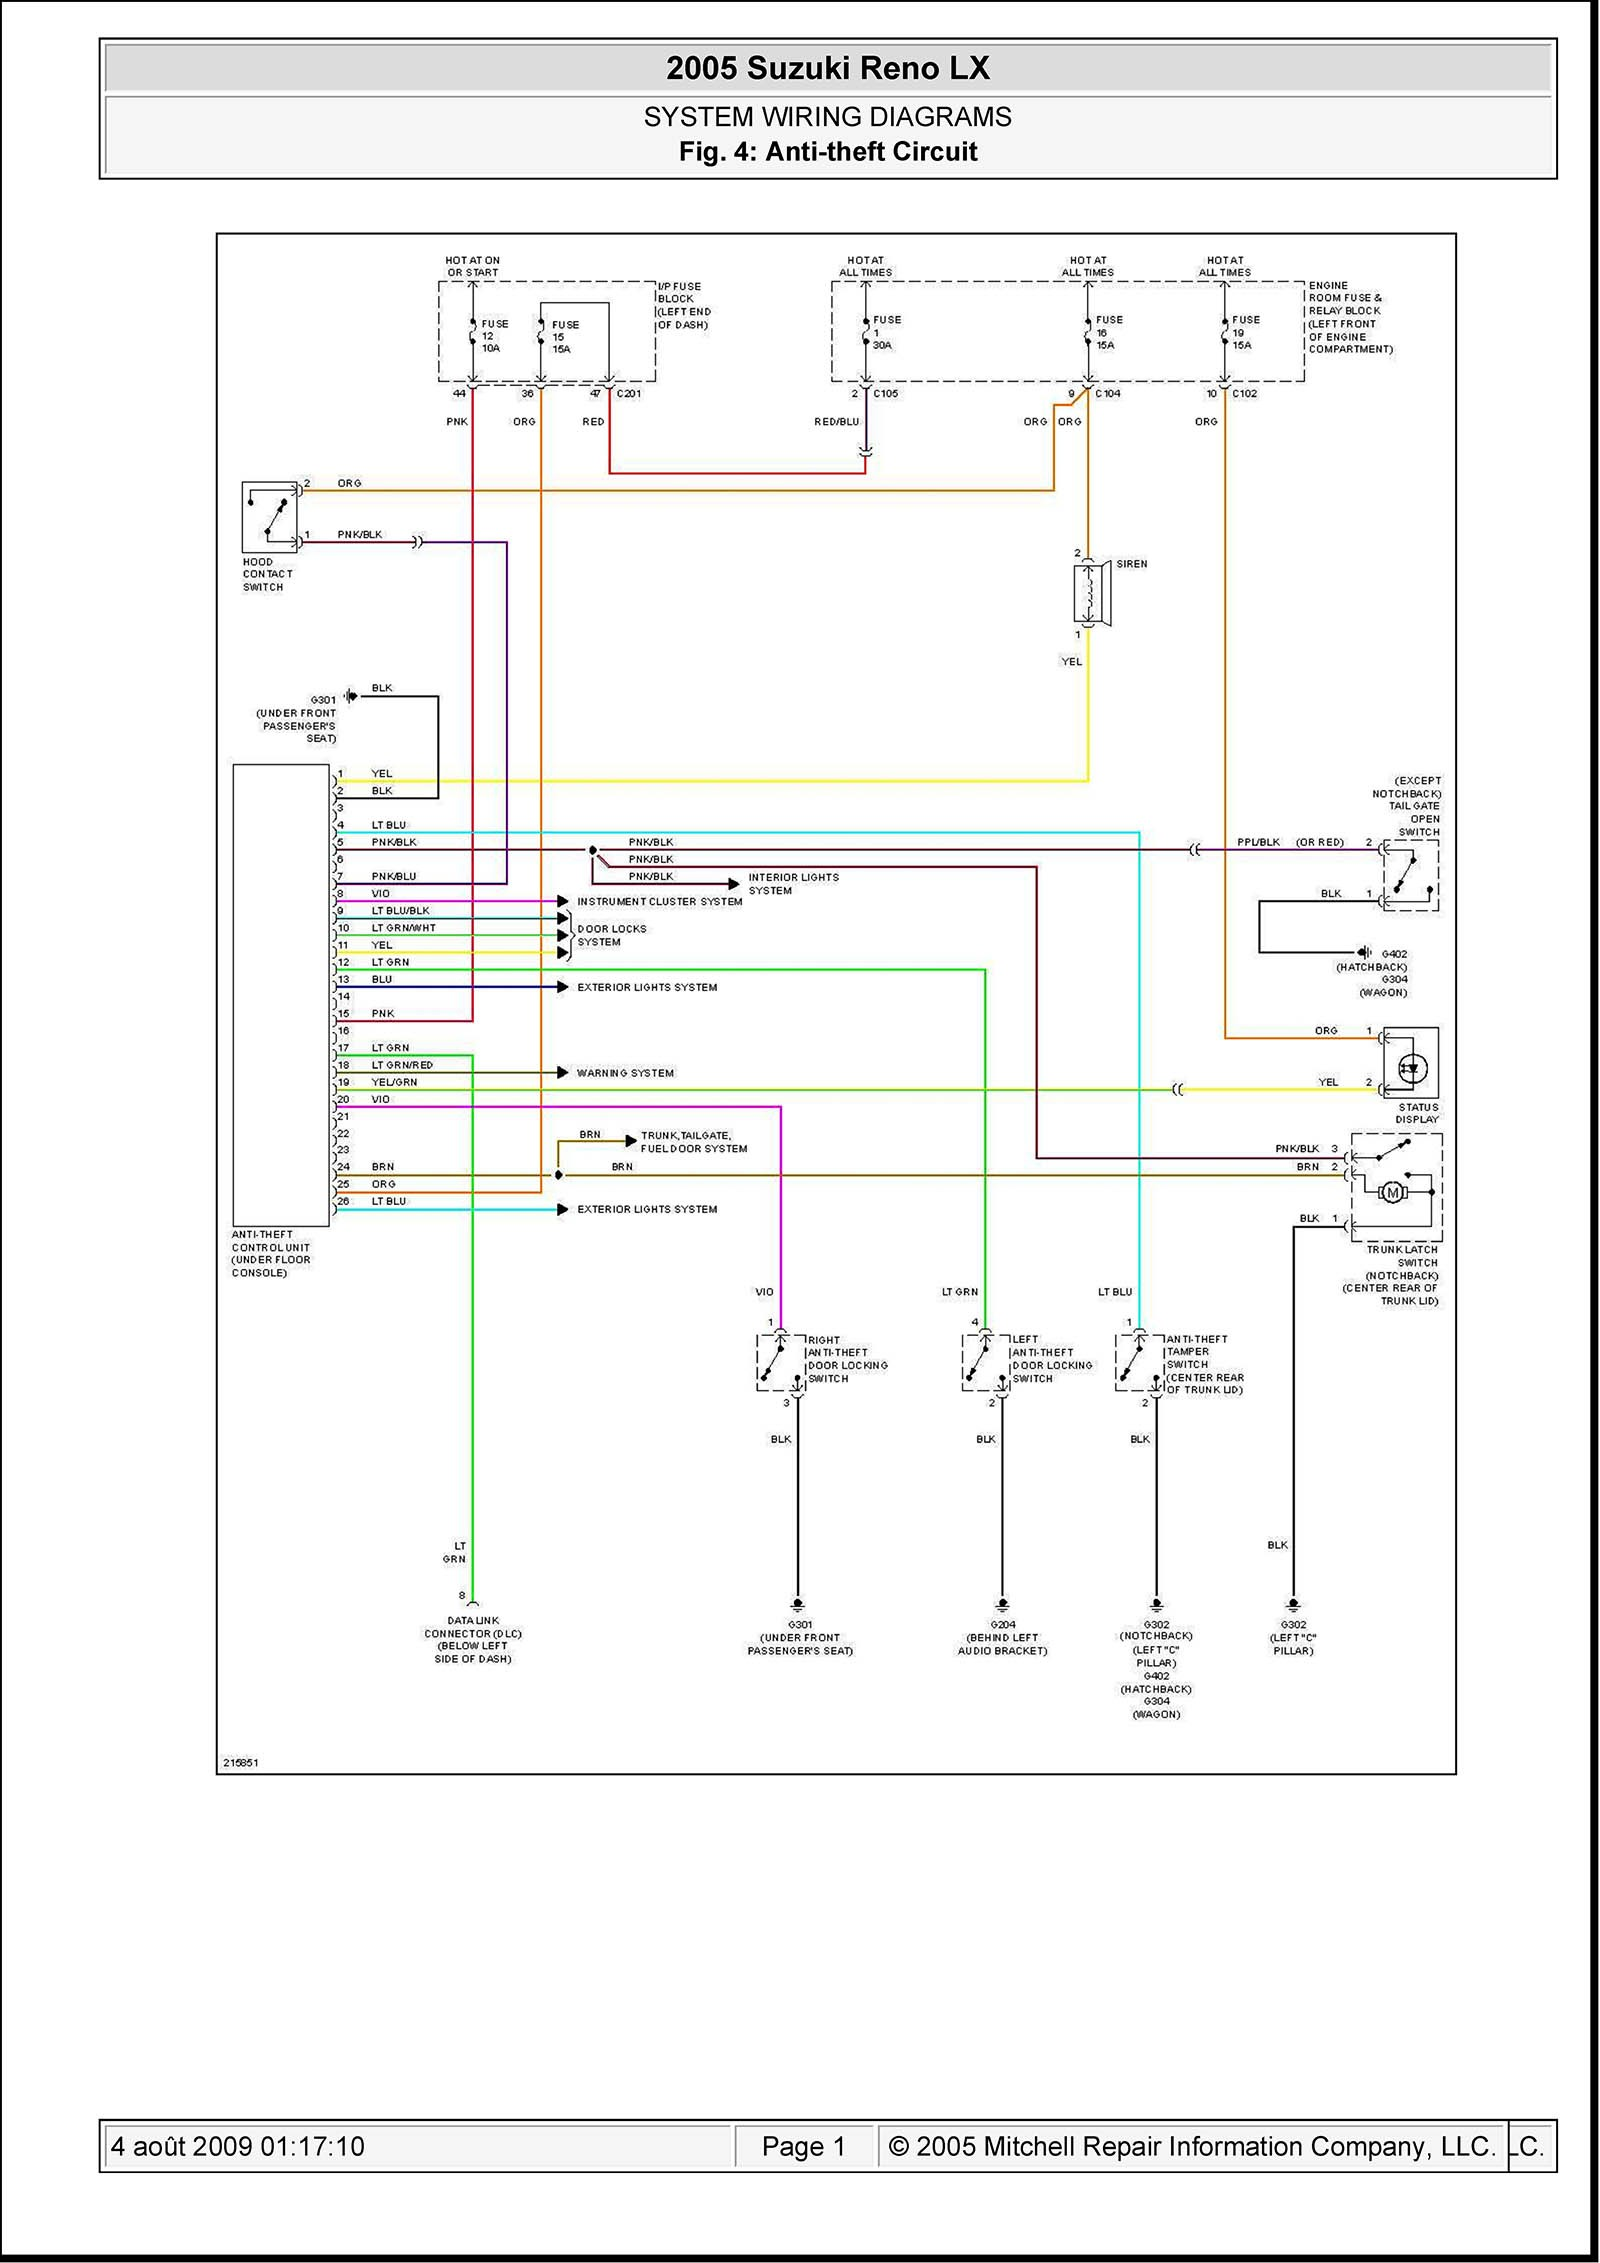 Wiring Diagram for 2009 Chevy Aveo 1.6 Diagram] Chevrolet Optra User Wiring Diagram Full Version Hd Of Wiring Diagram for 2009 Chevy Aveo 1.6